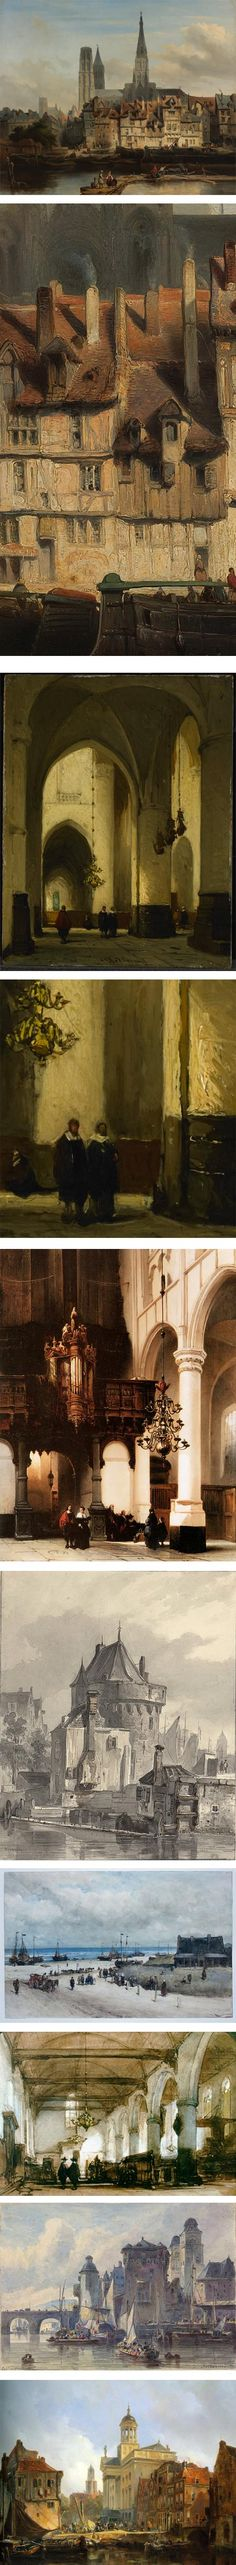 Nineteenth century painter Johannes Bosboom